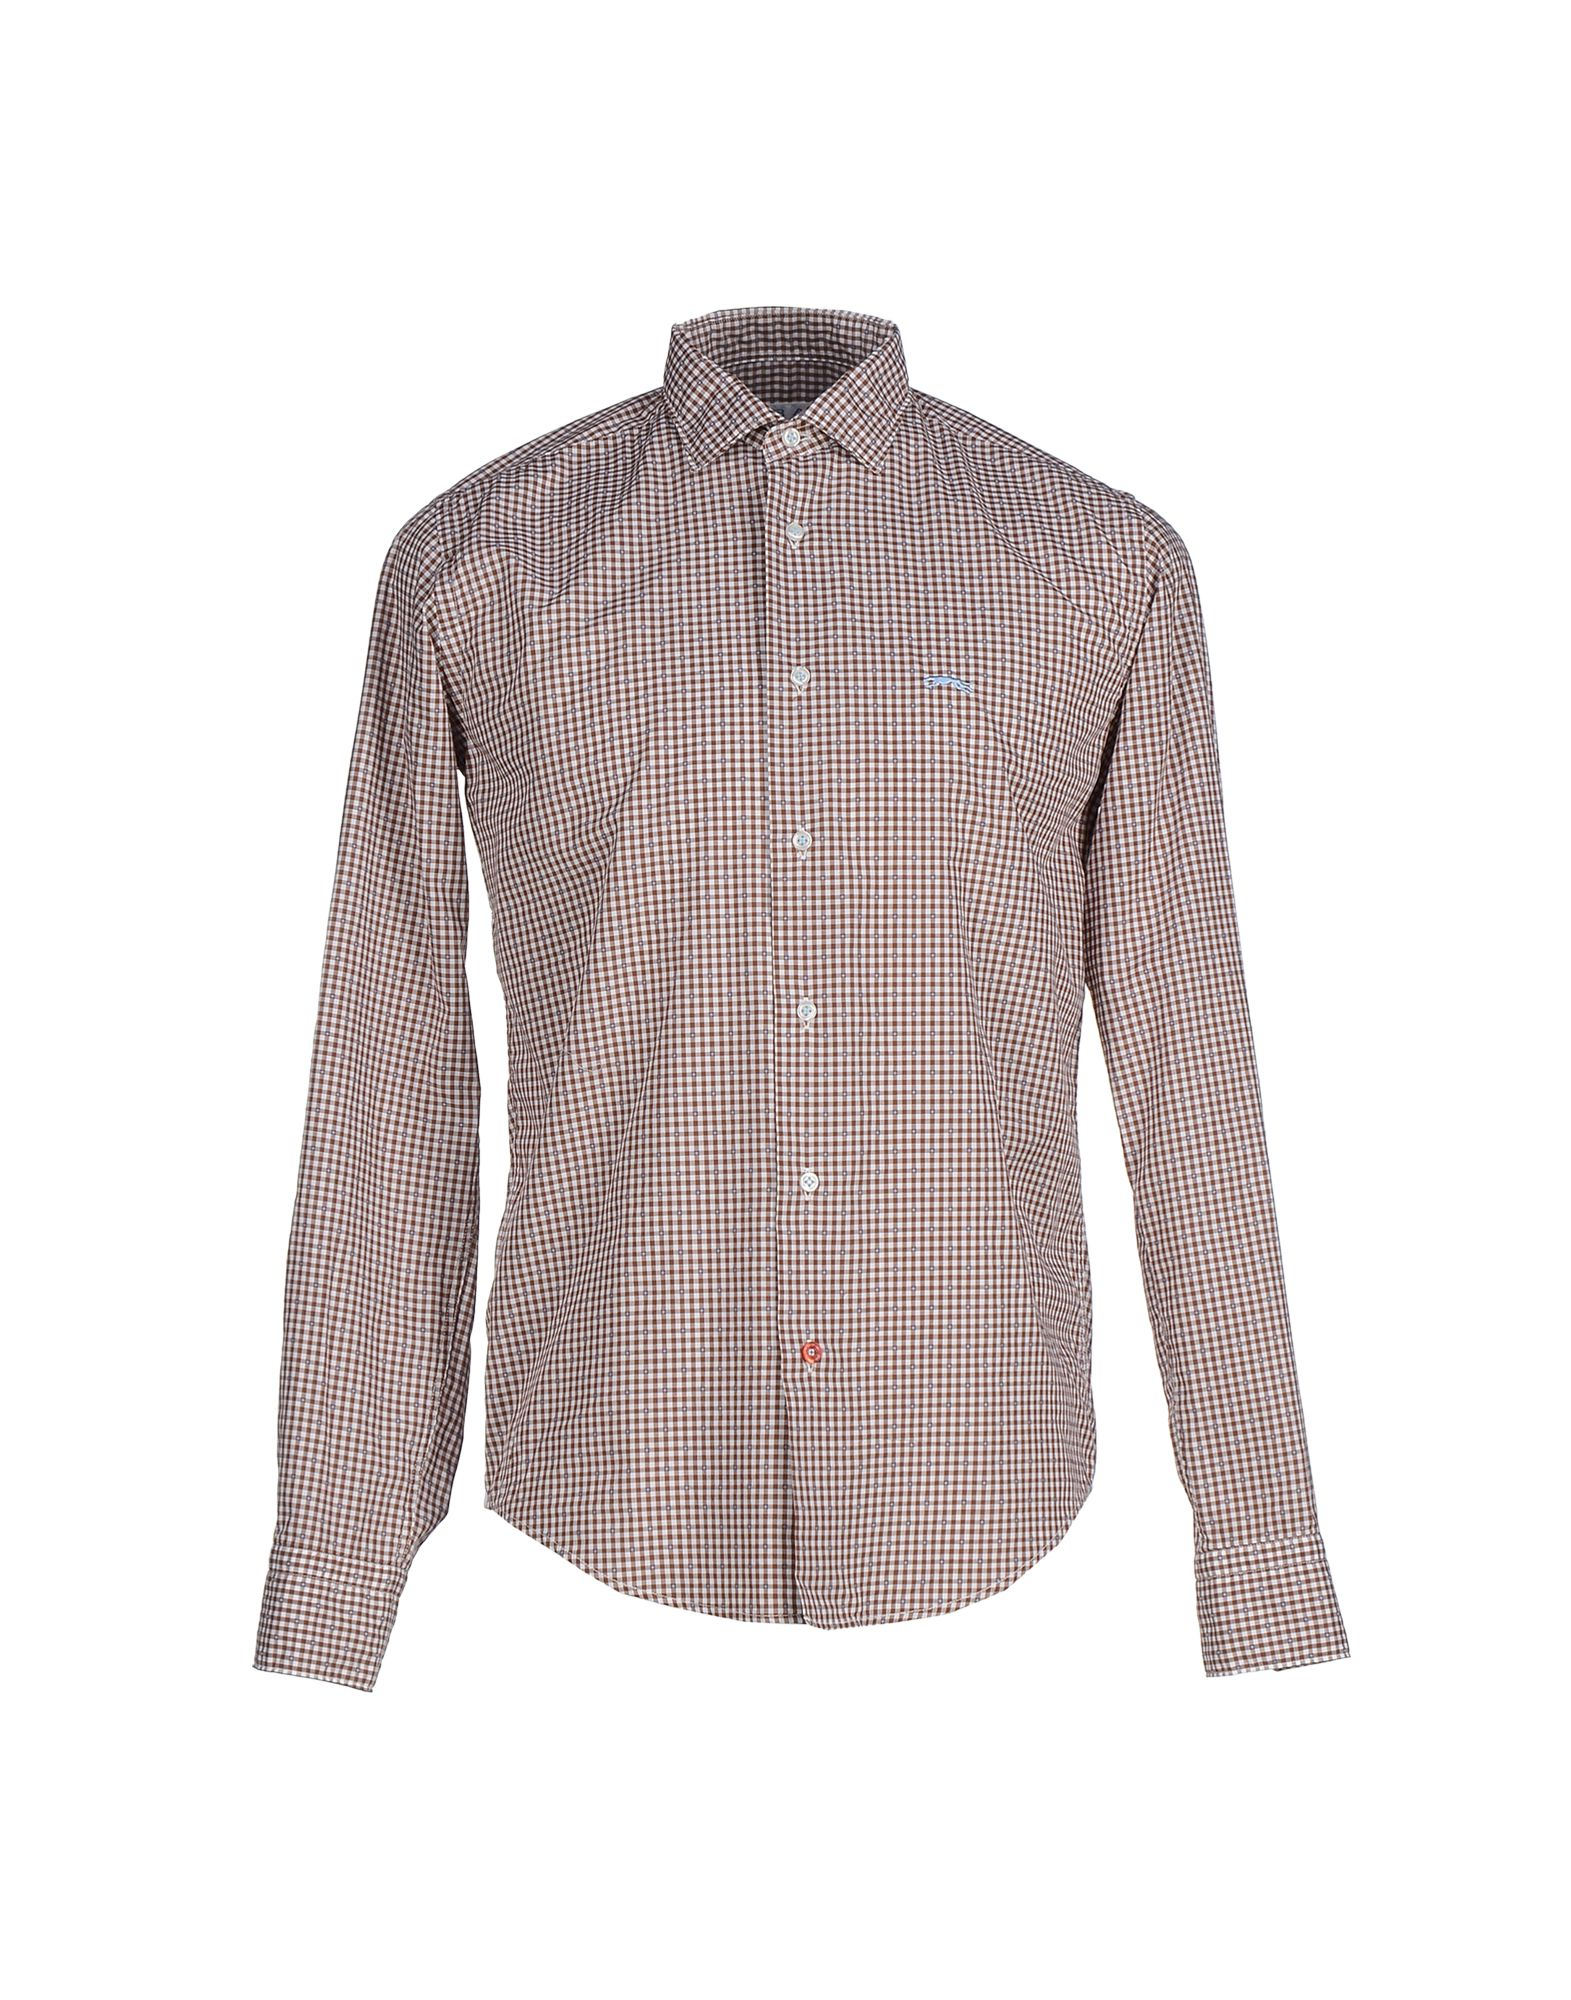 ERA Checked Shirt in Brown